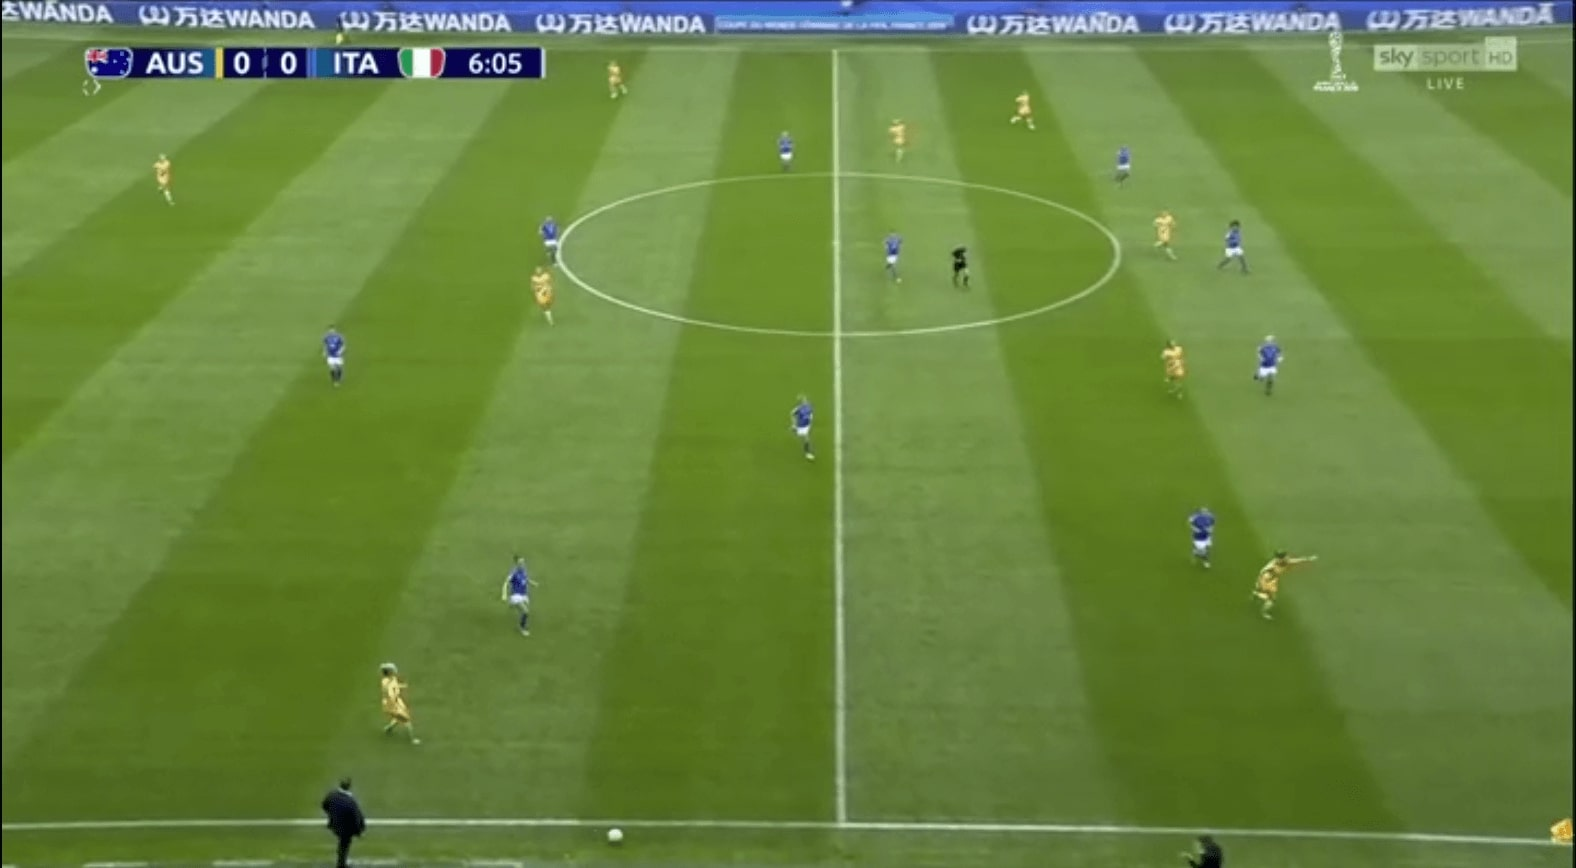 FIFA Women's World Cup 2019 Tactical Preview Brazil vs Italy